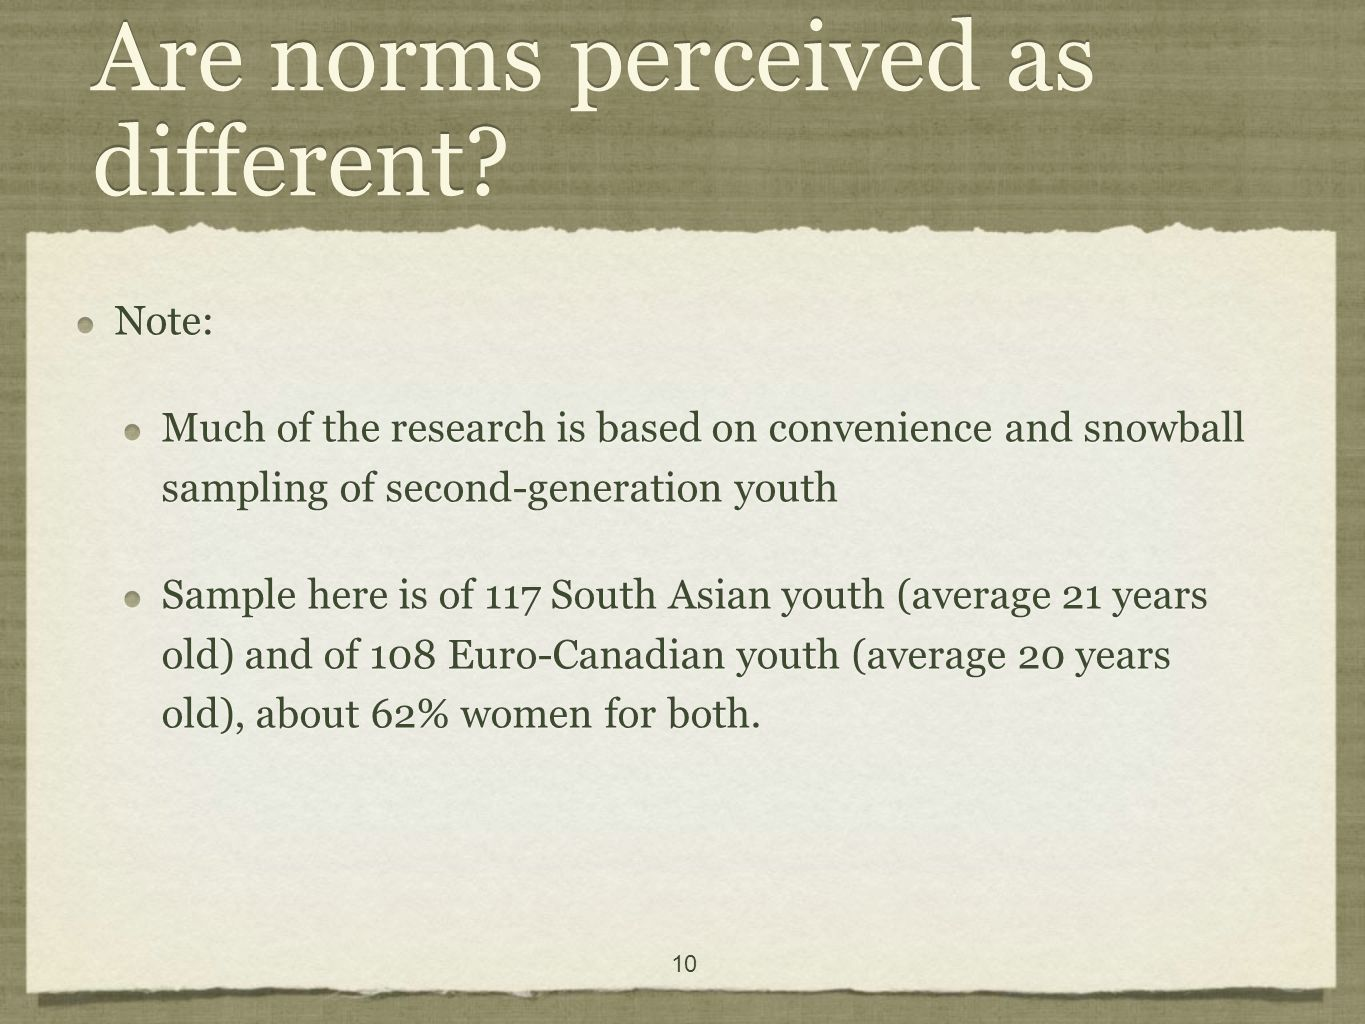 10 Note: Much of the research is based on convenience and snowball sampling of second-generation youth Sample here is of 117 South Asian youth (average 21 years old) and of 108 Euro-Canadian youth (average 20 years old), about 62% women for both.